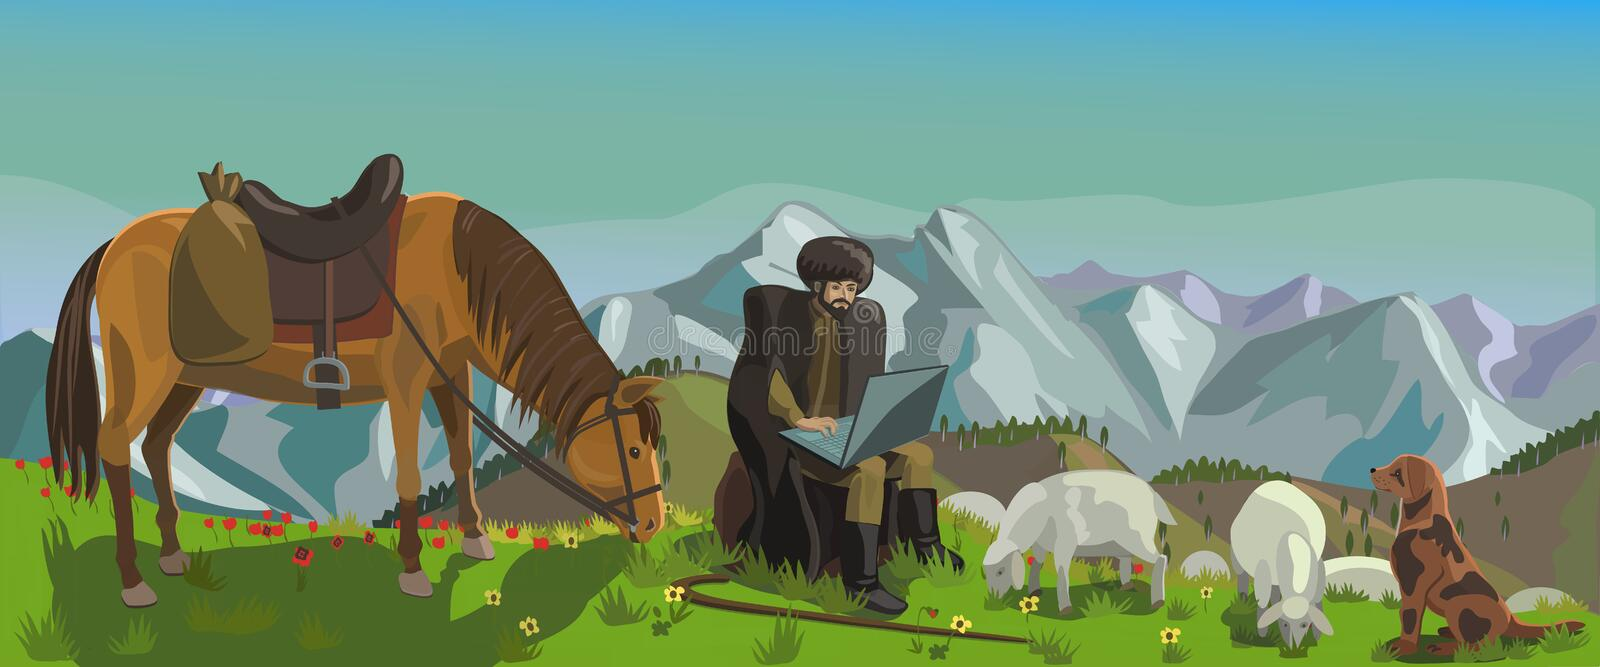 Shepherd, grazing sheep rewritten on the Internet. A shepherd herds sheep in the mountains and sits on a rock and through a laptop corresponds on the Internet royalty free illustration